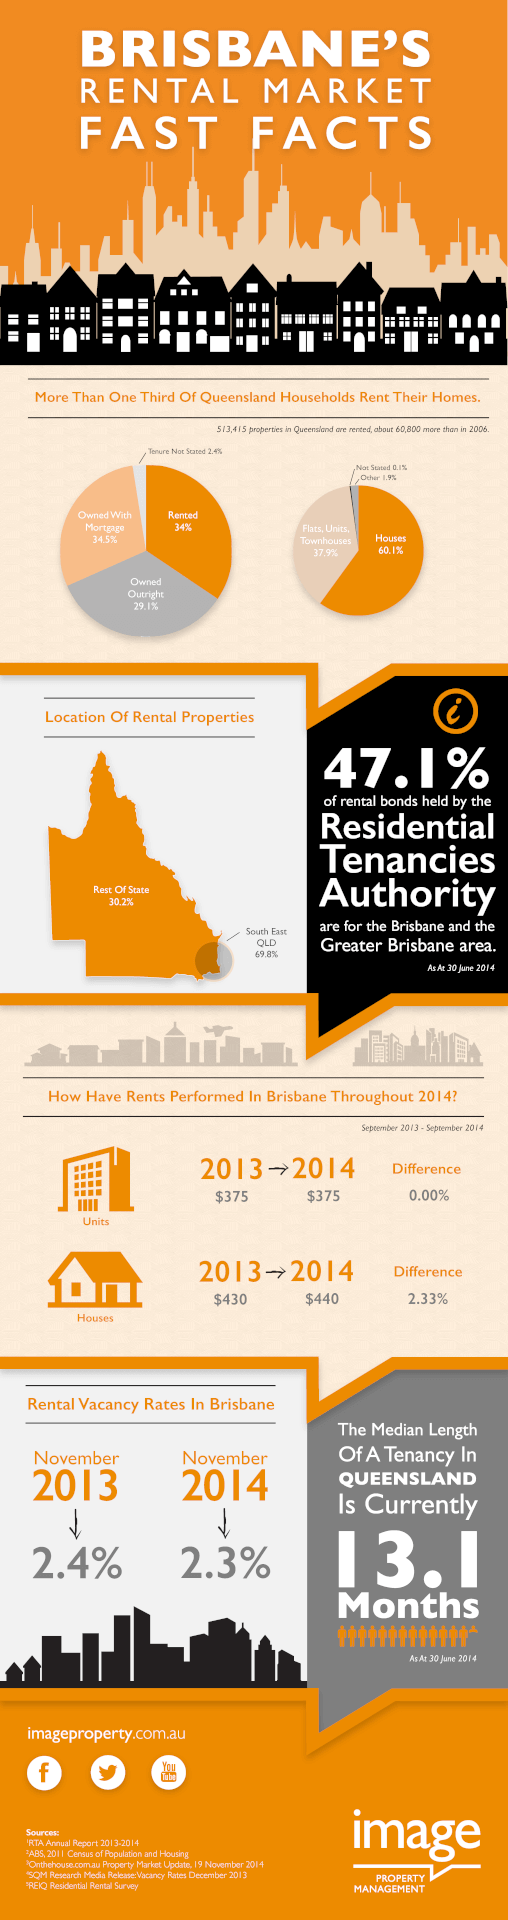 Brisbane Rental Market Fast Facts